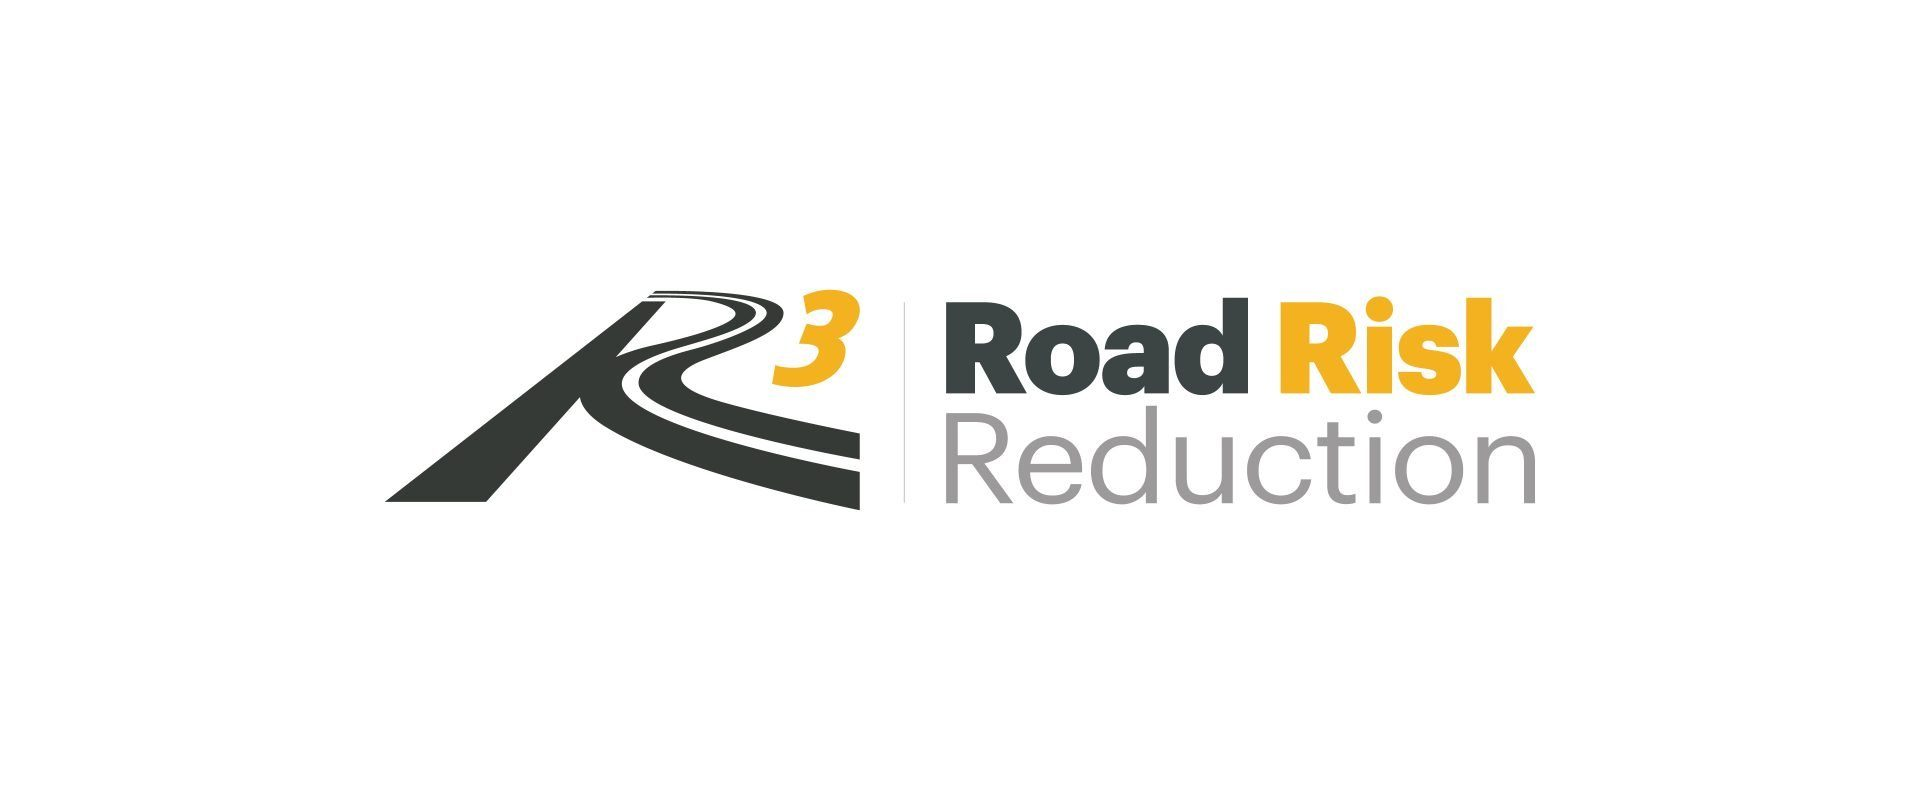 R3 Road Risk Reduction Introduction